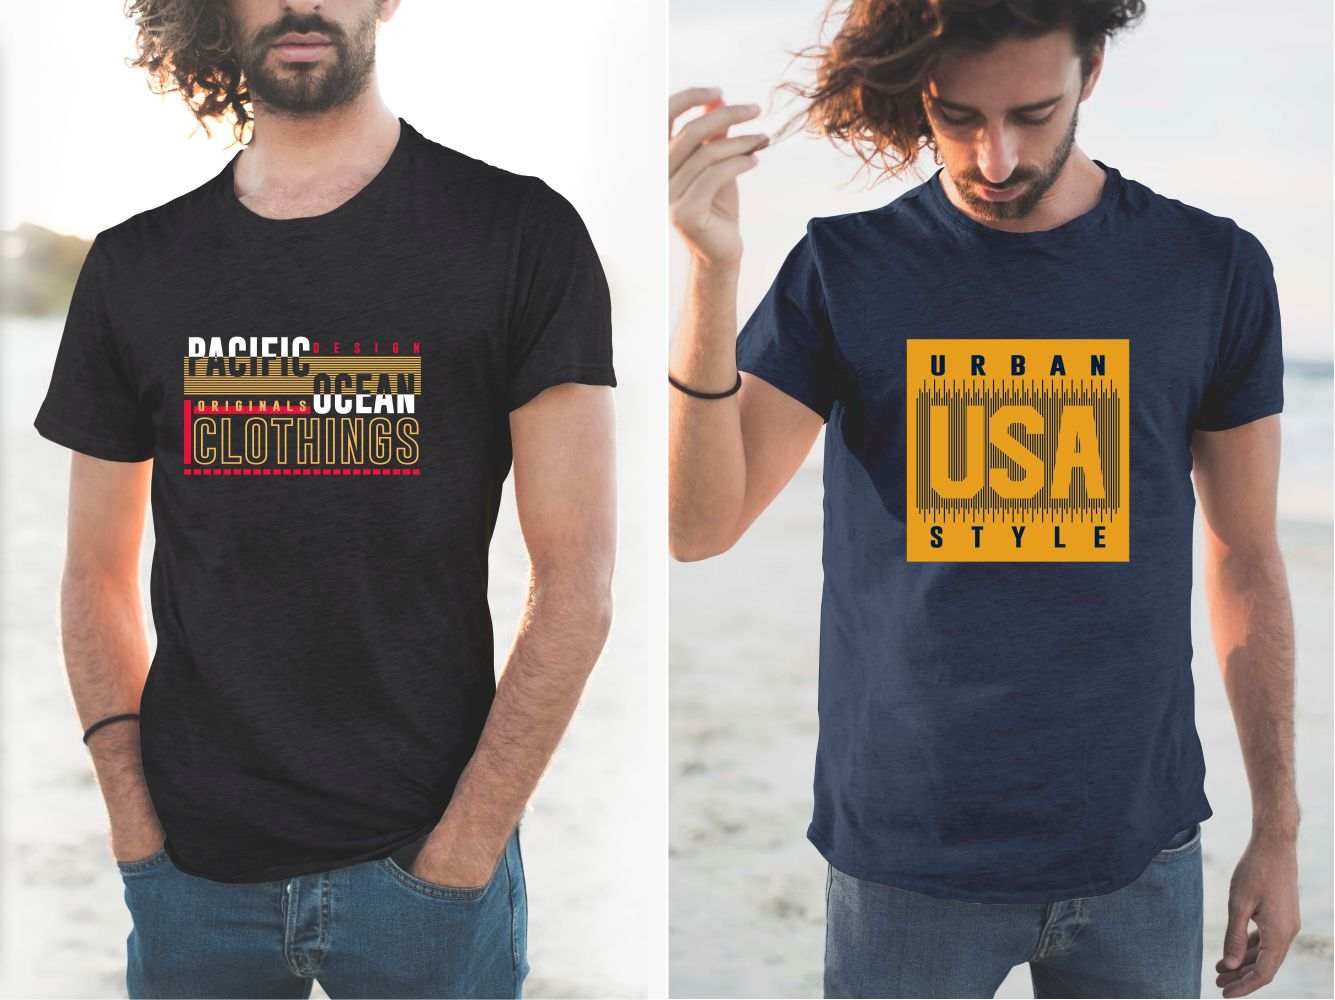 Black and blue T-shirts with colorful and vibrant names.